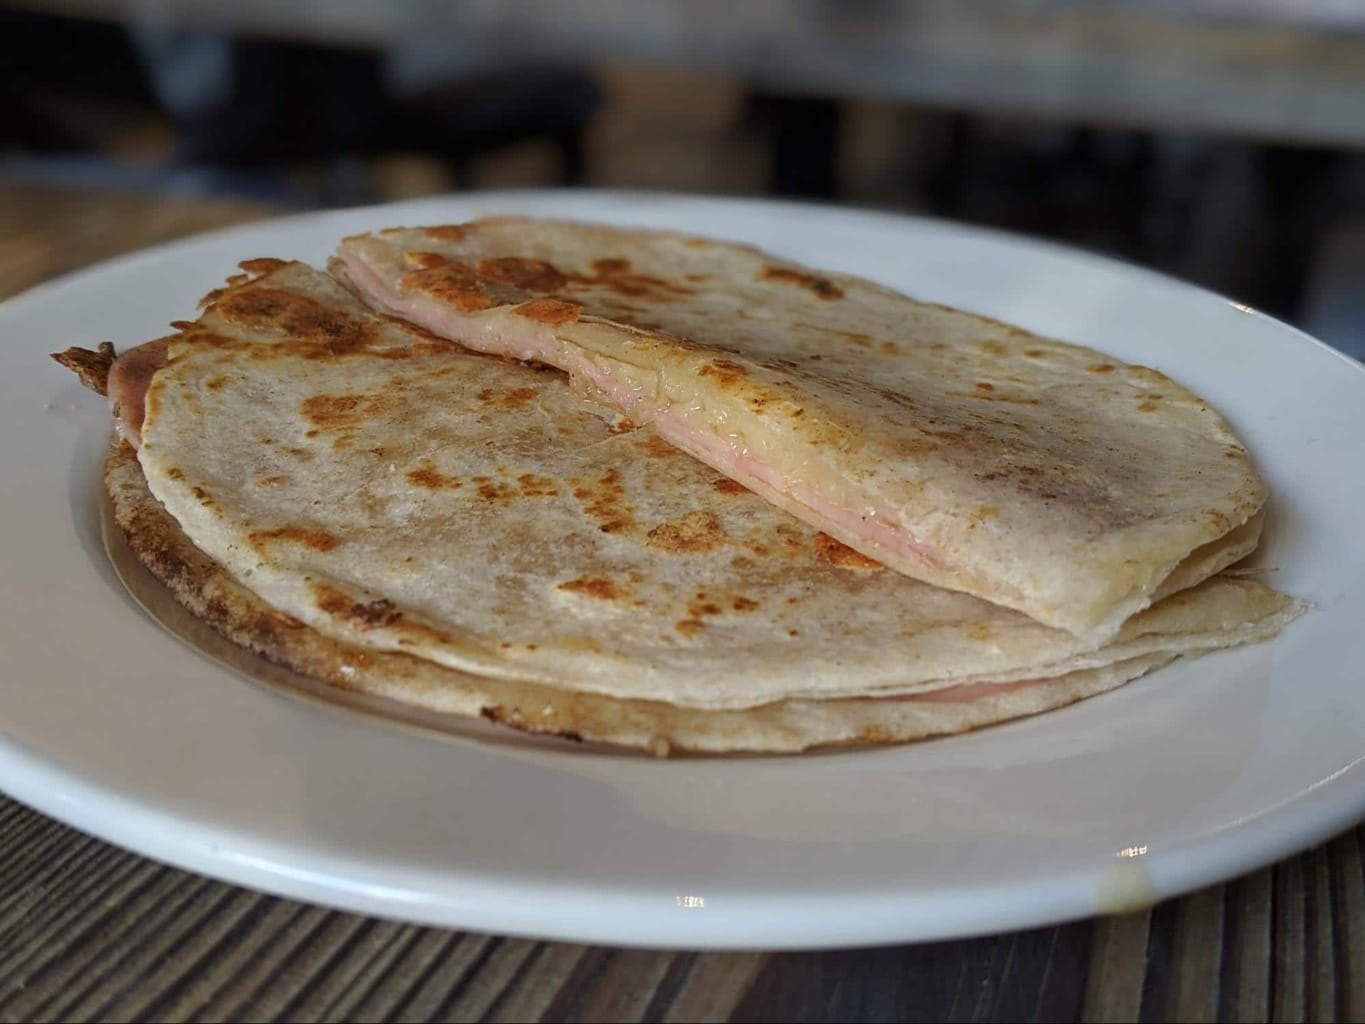 Sincronizadas are breakfast quesadillas